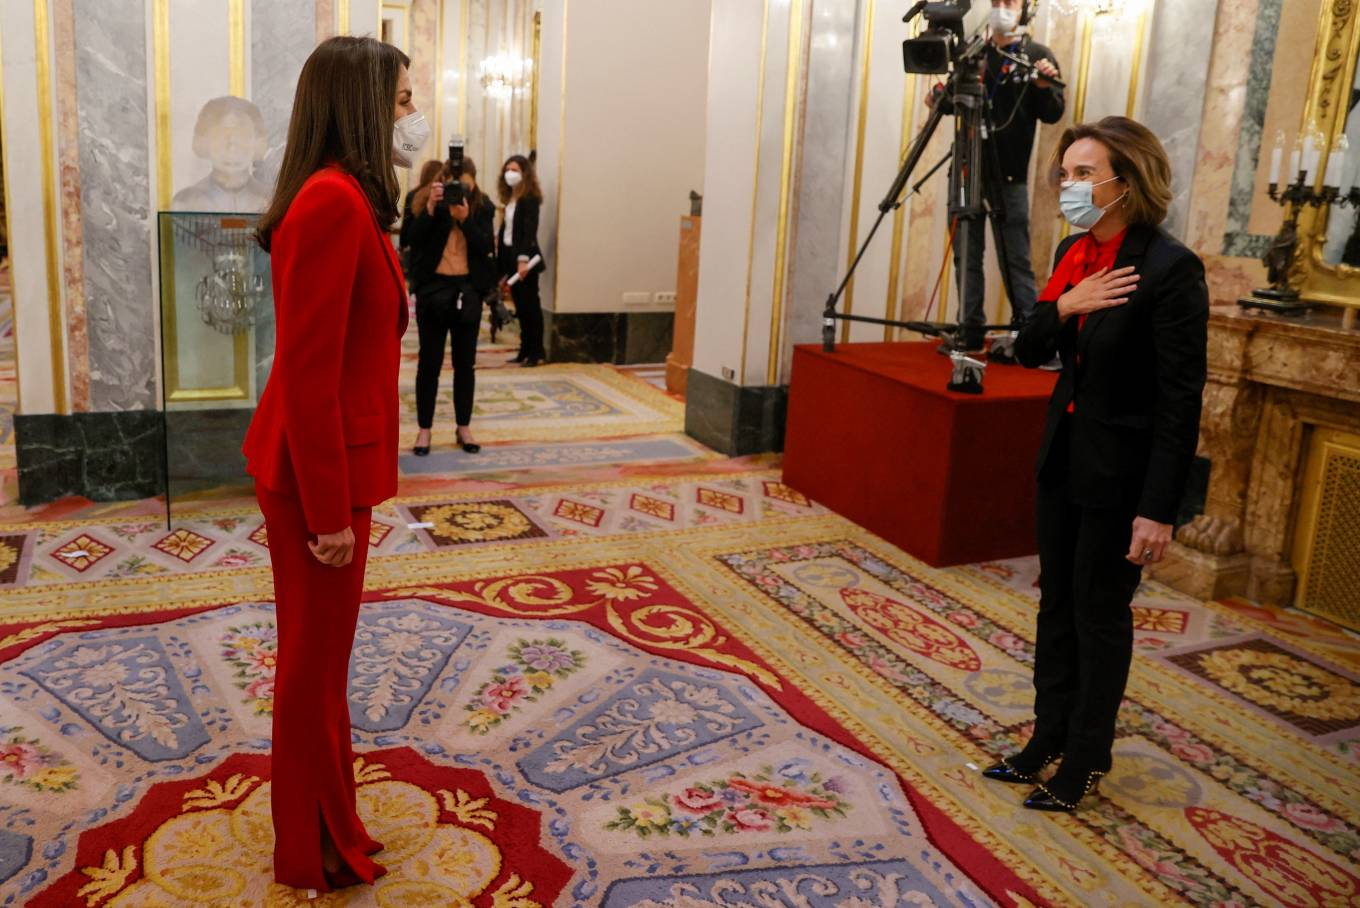 Queen Letizia Of Spain 2021 : Queen Letizia of Spain – In all red attends the tribute to the figure of Clara Campoamor in Madrid-07